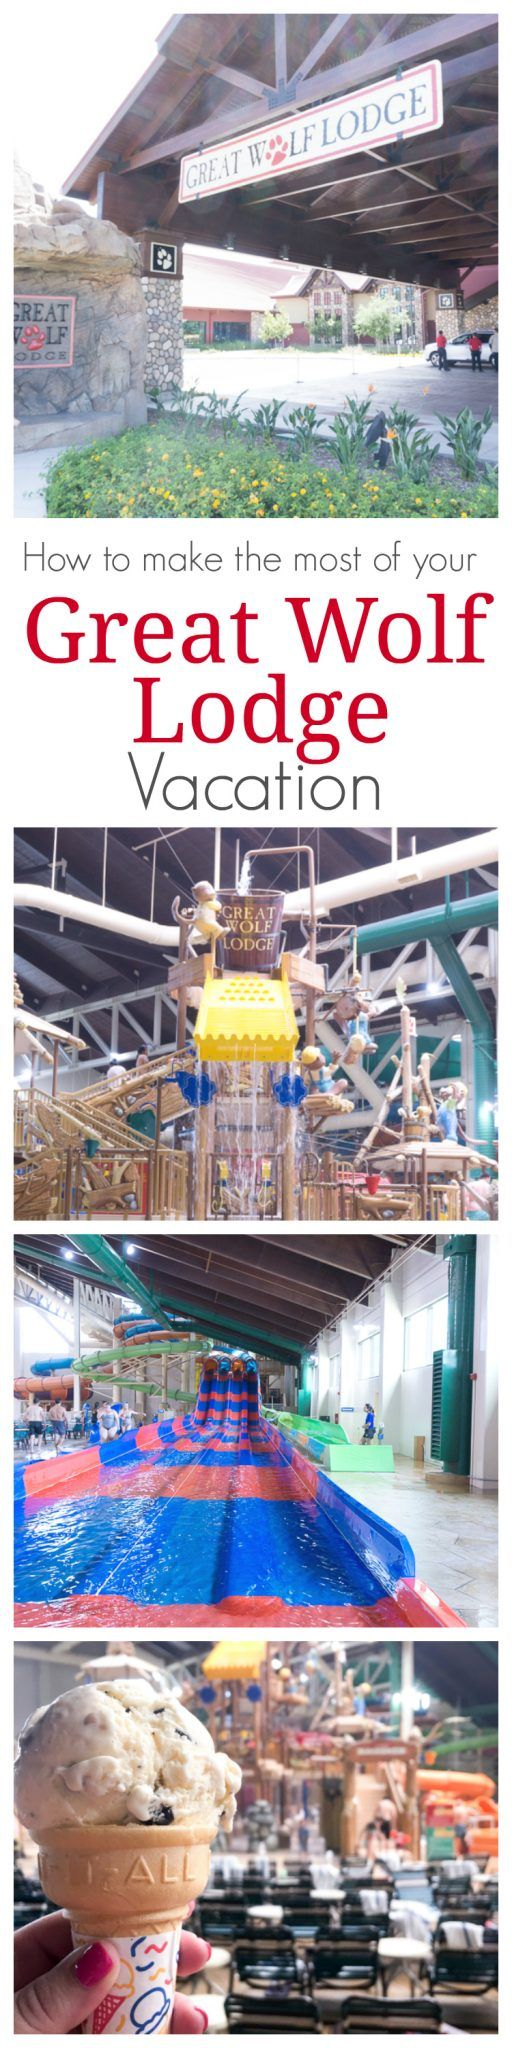 Are you considering a vacation at a Great Wolf Lodge hotel? Make sure to read my tips on how to make the most of your Great Wolf Lodge vacation, there are so many wonderful activities to take advantage of that you don't want to miss out.